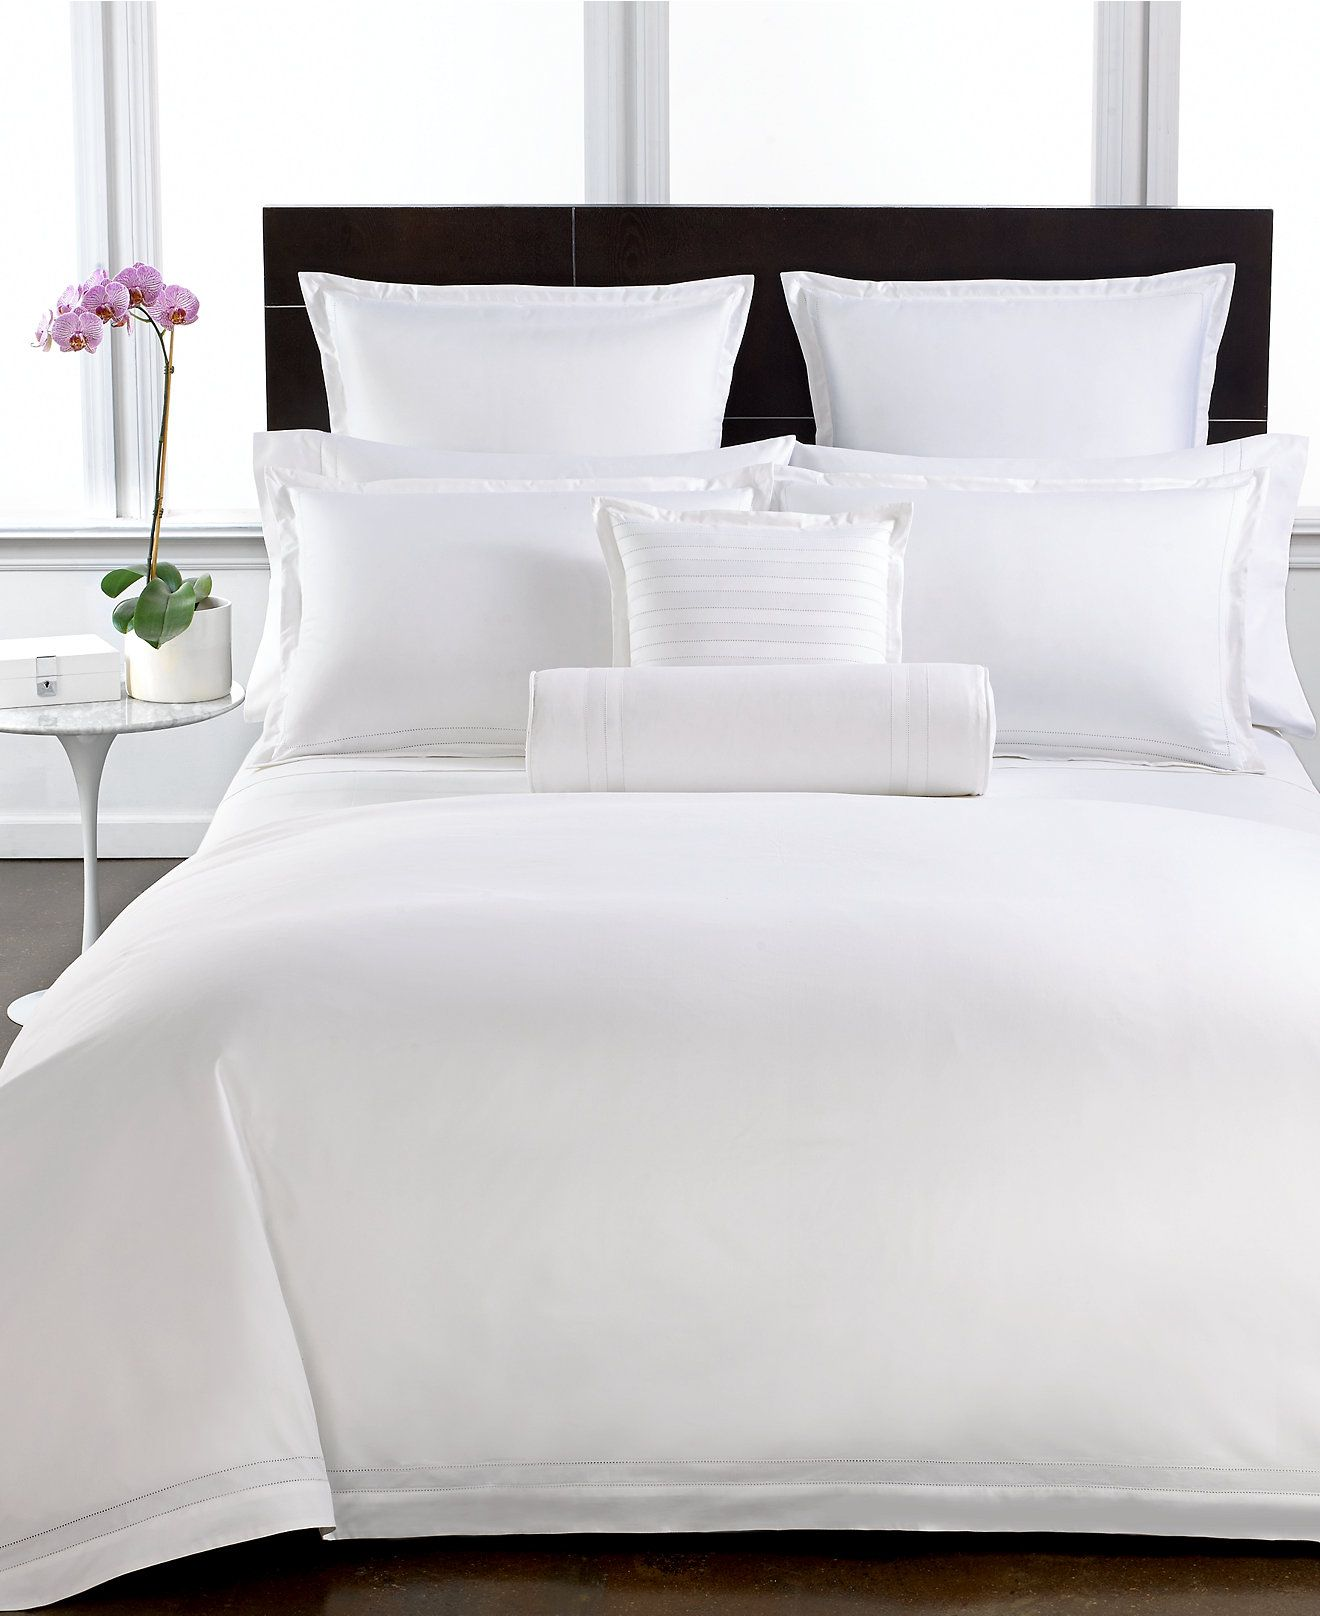 white bed sheets. Hotel Collection 800 Thread Count Egyptian Cotton European Sham - Bedding Collections Bed \u0026 Bath White Sheets